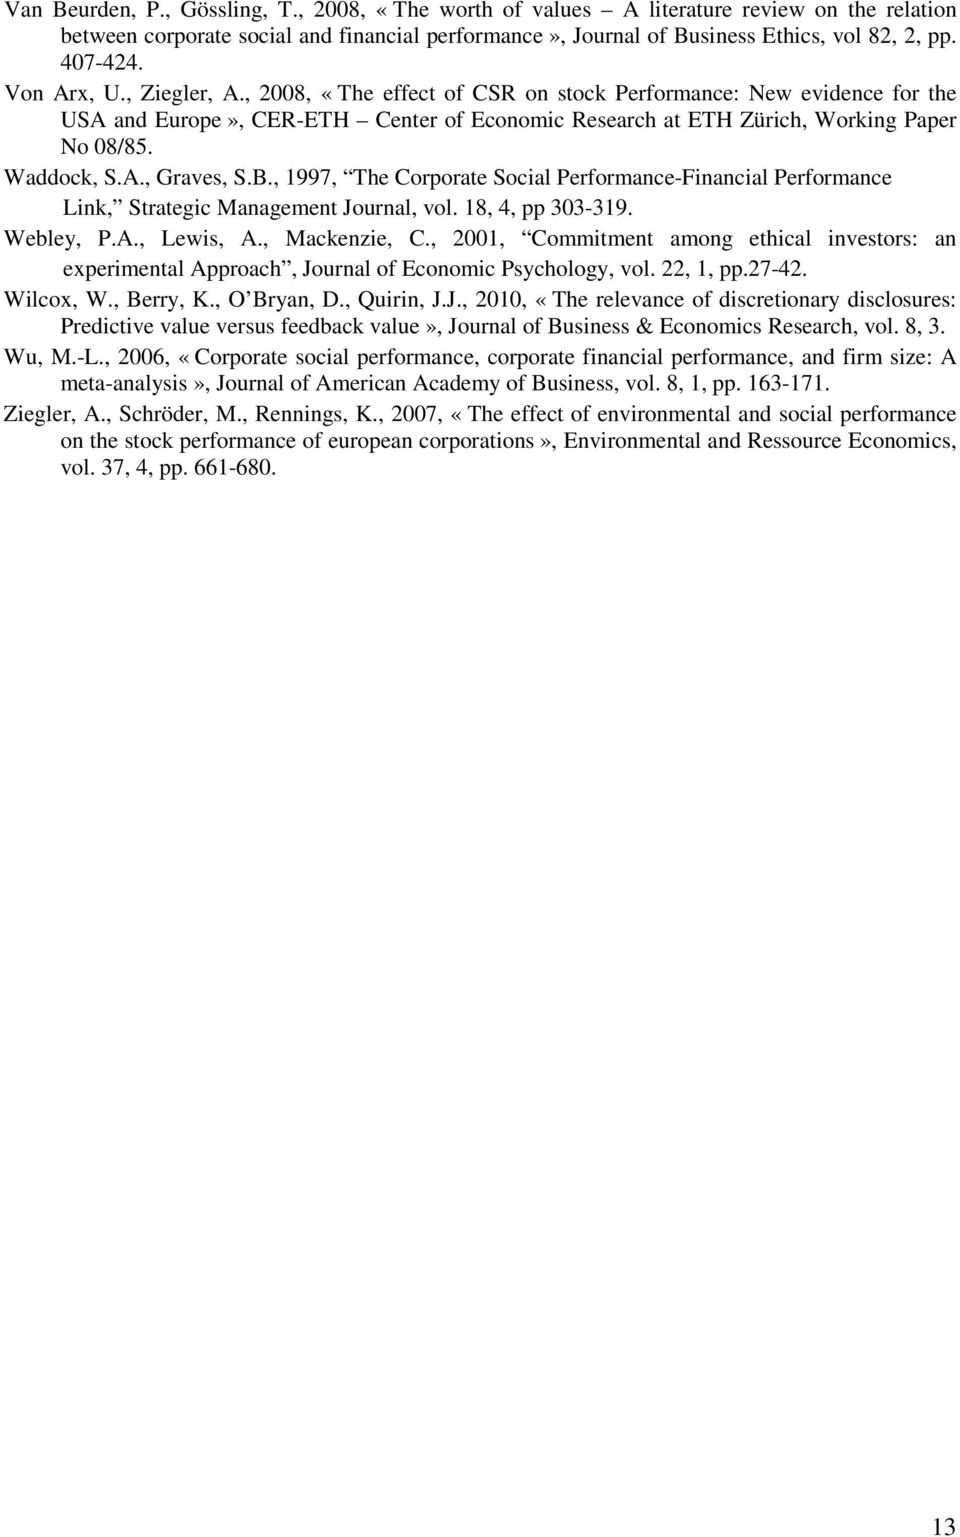 B., 1997, The Corporate Social Performance-Financial Performance Link, Strategic Management Journal, vol. 18, 4, pp 303-319. Webley, P.A., Lewis, A., Mackenzie, C.